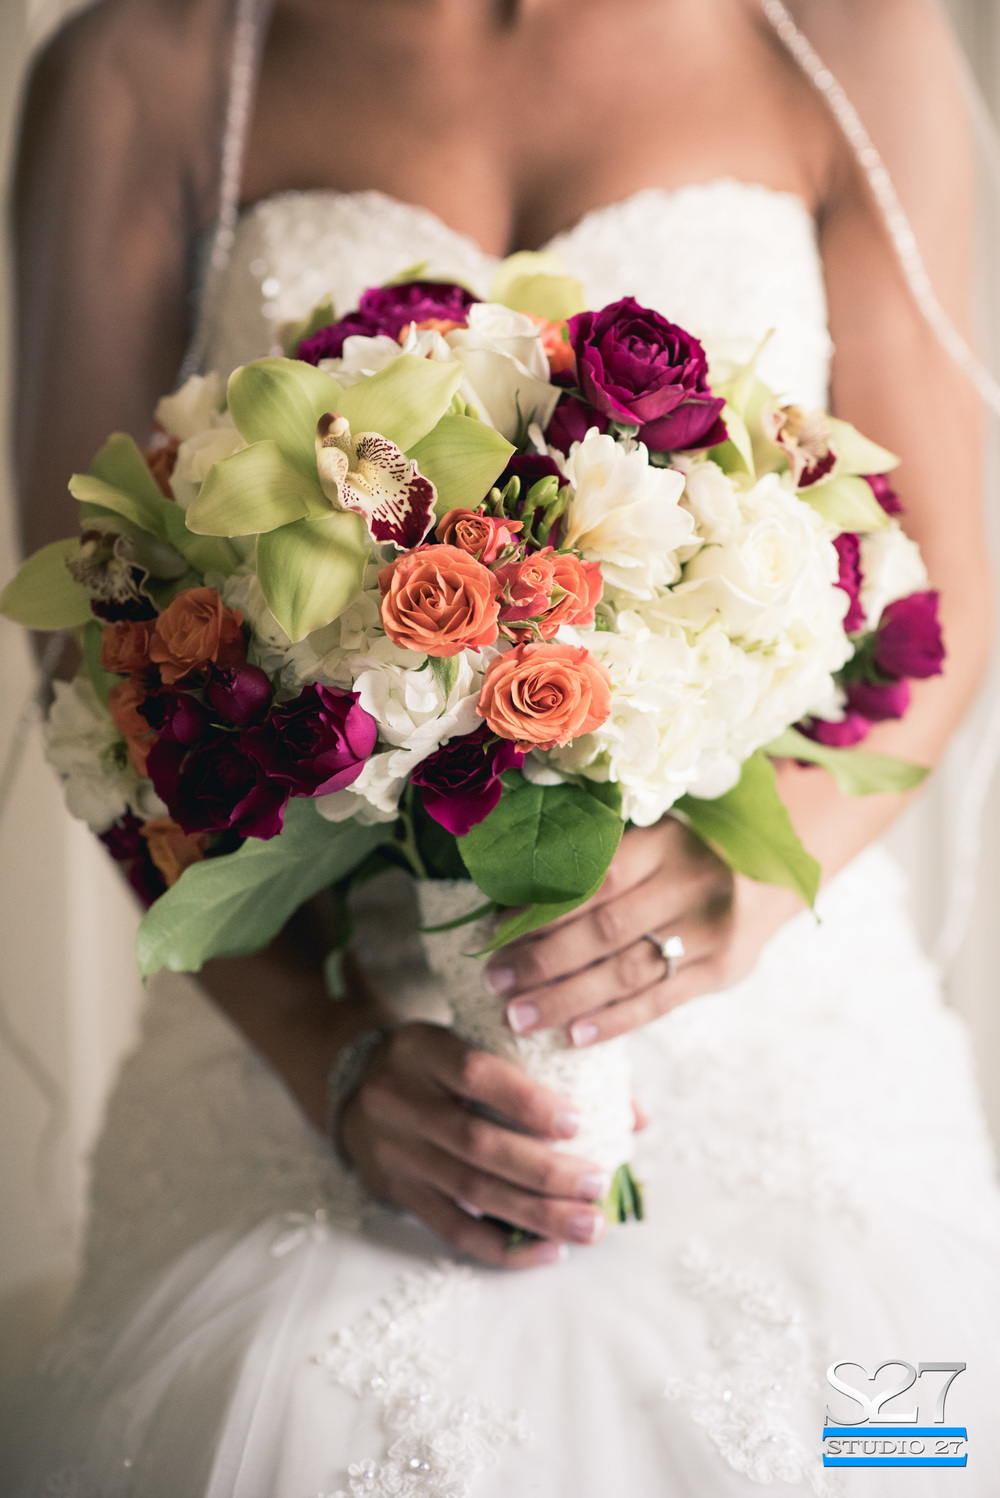 Bridal Bouquet with Grandmother's lace